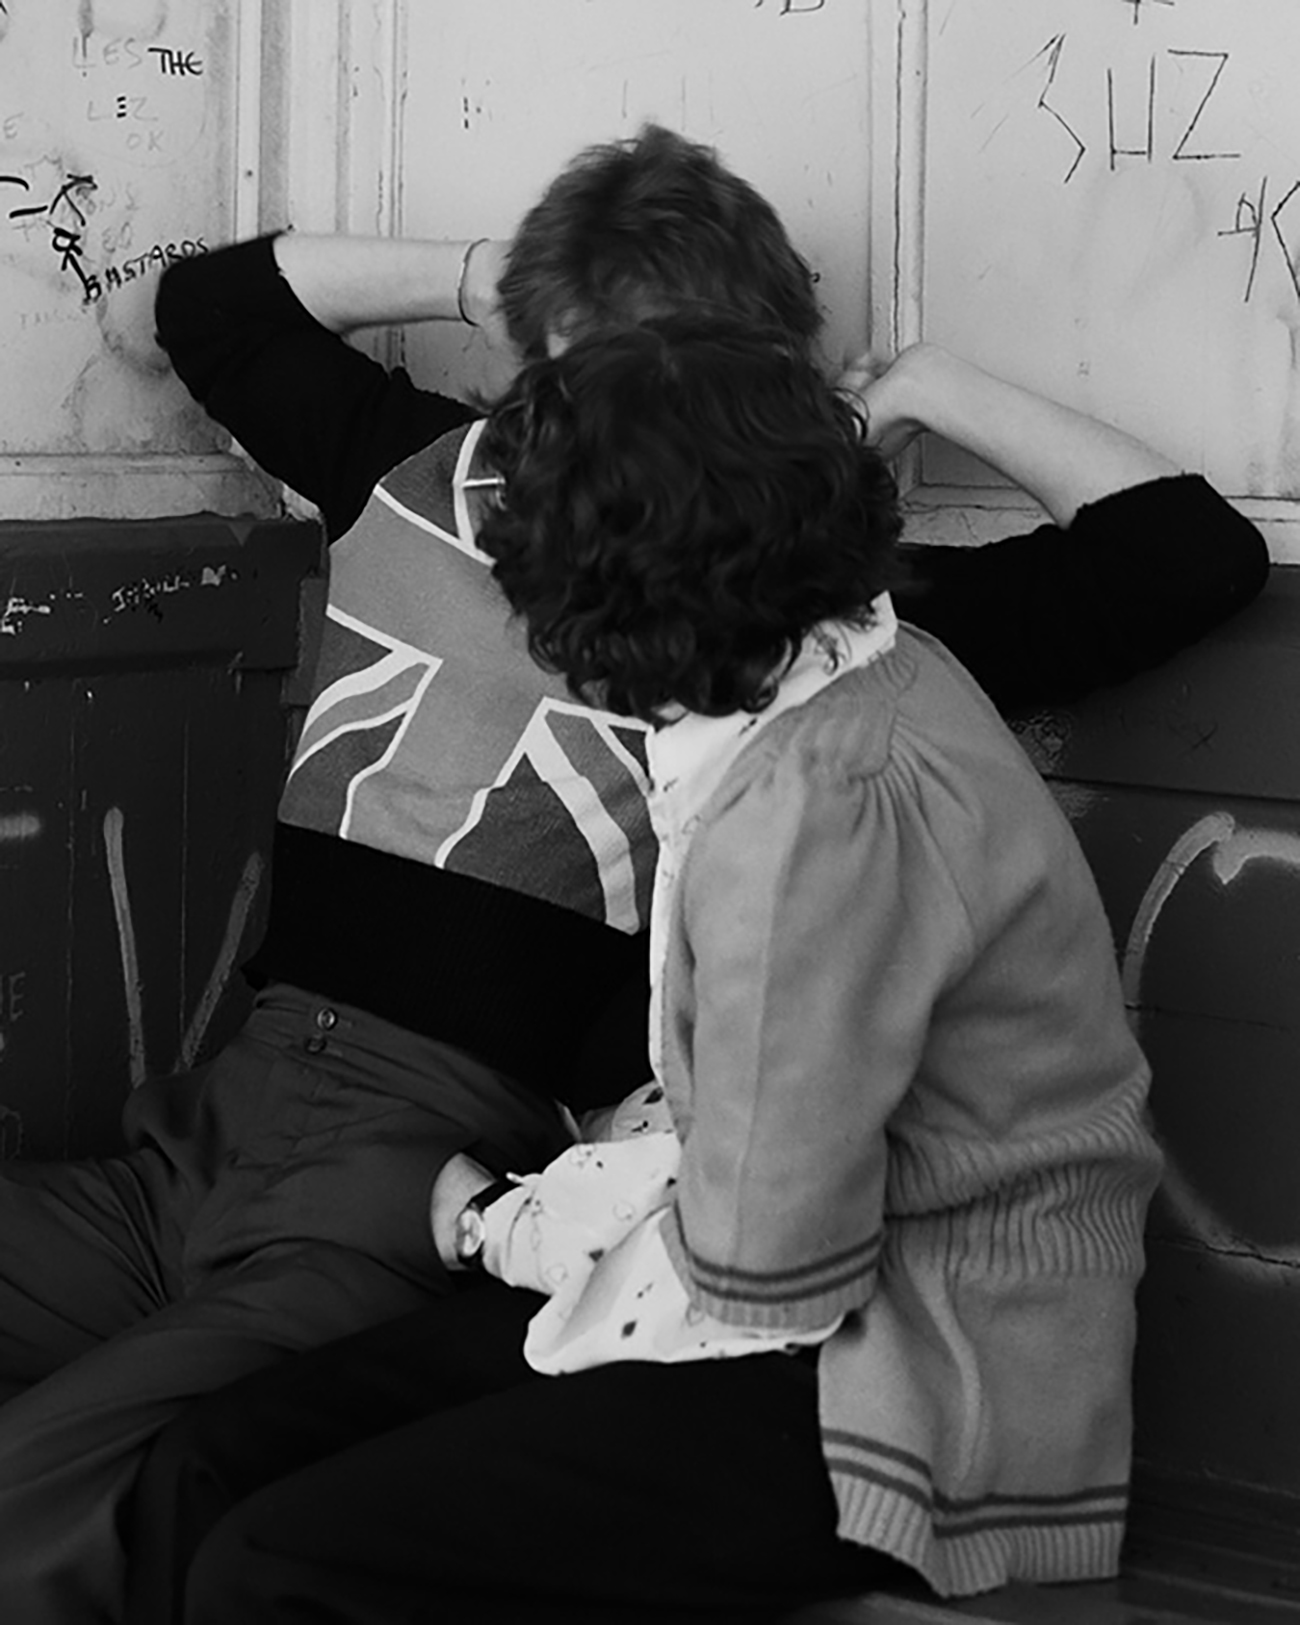 The image's fram is almost completely taken up by the two bodies of a couple. One of which, we can only see their back, as they are turned towards their partner, covering up the face of their partner as well.